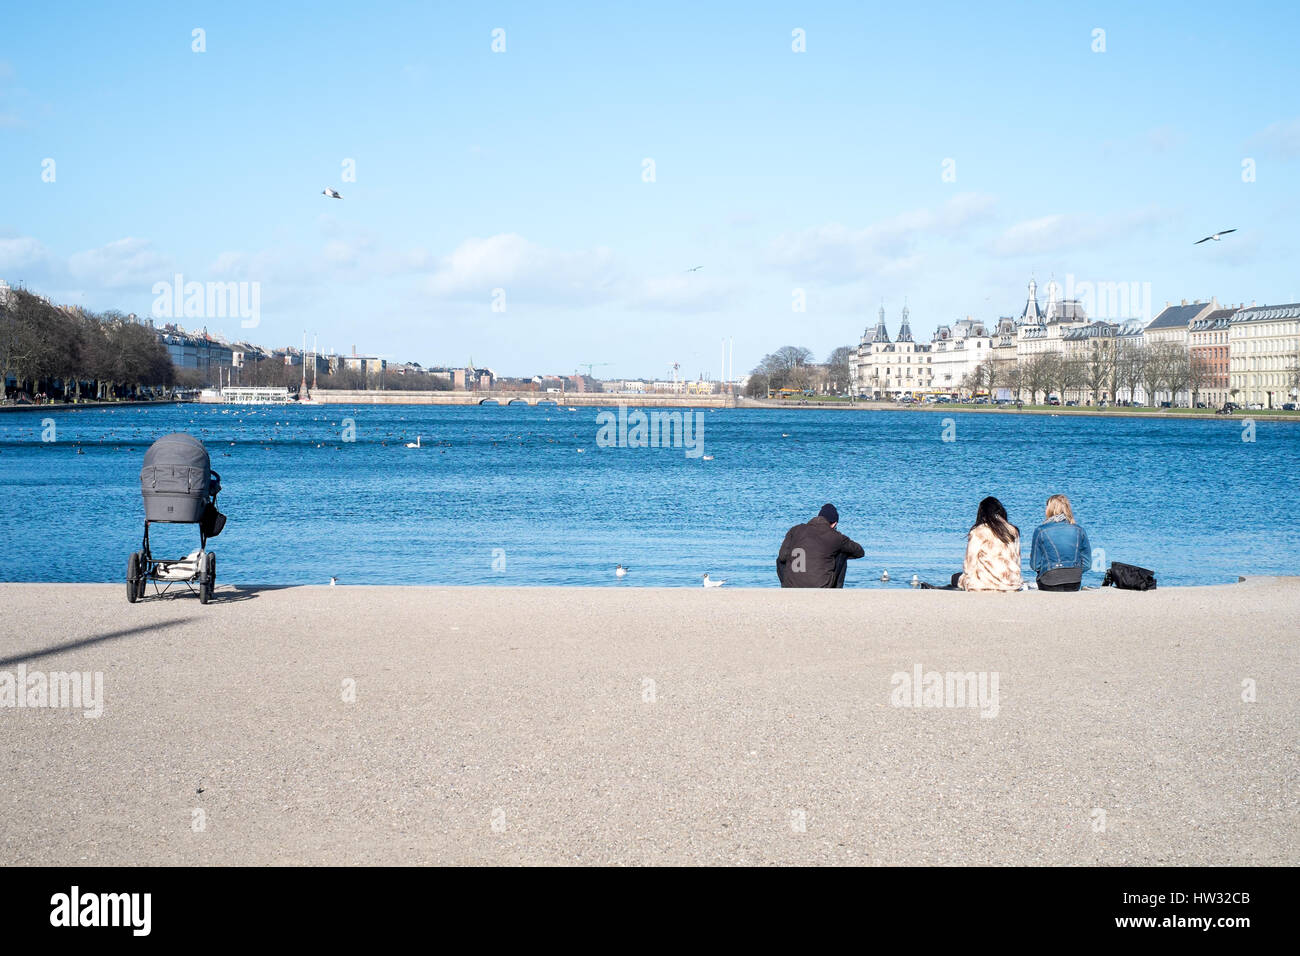 Relaxing locals enjoying an early spring day at Søerne (The Lakes) in early spring, Copenhagen, Denmark - Stock Image